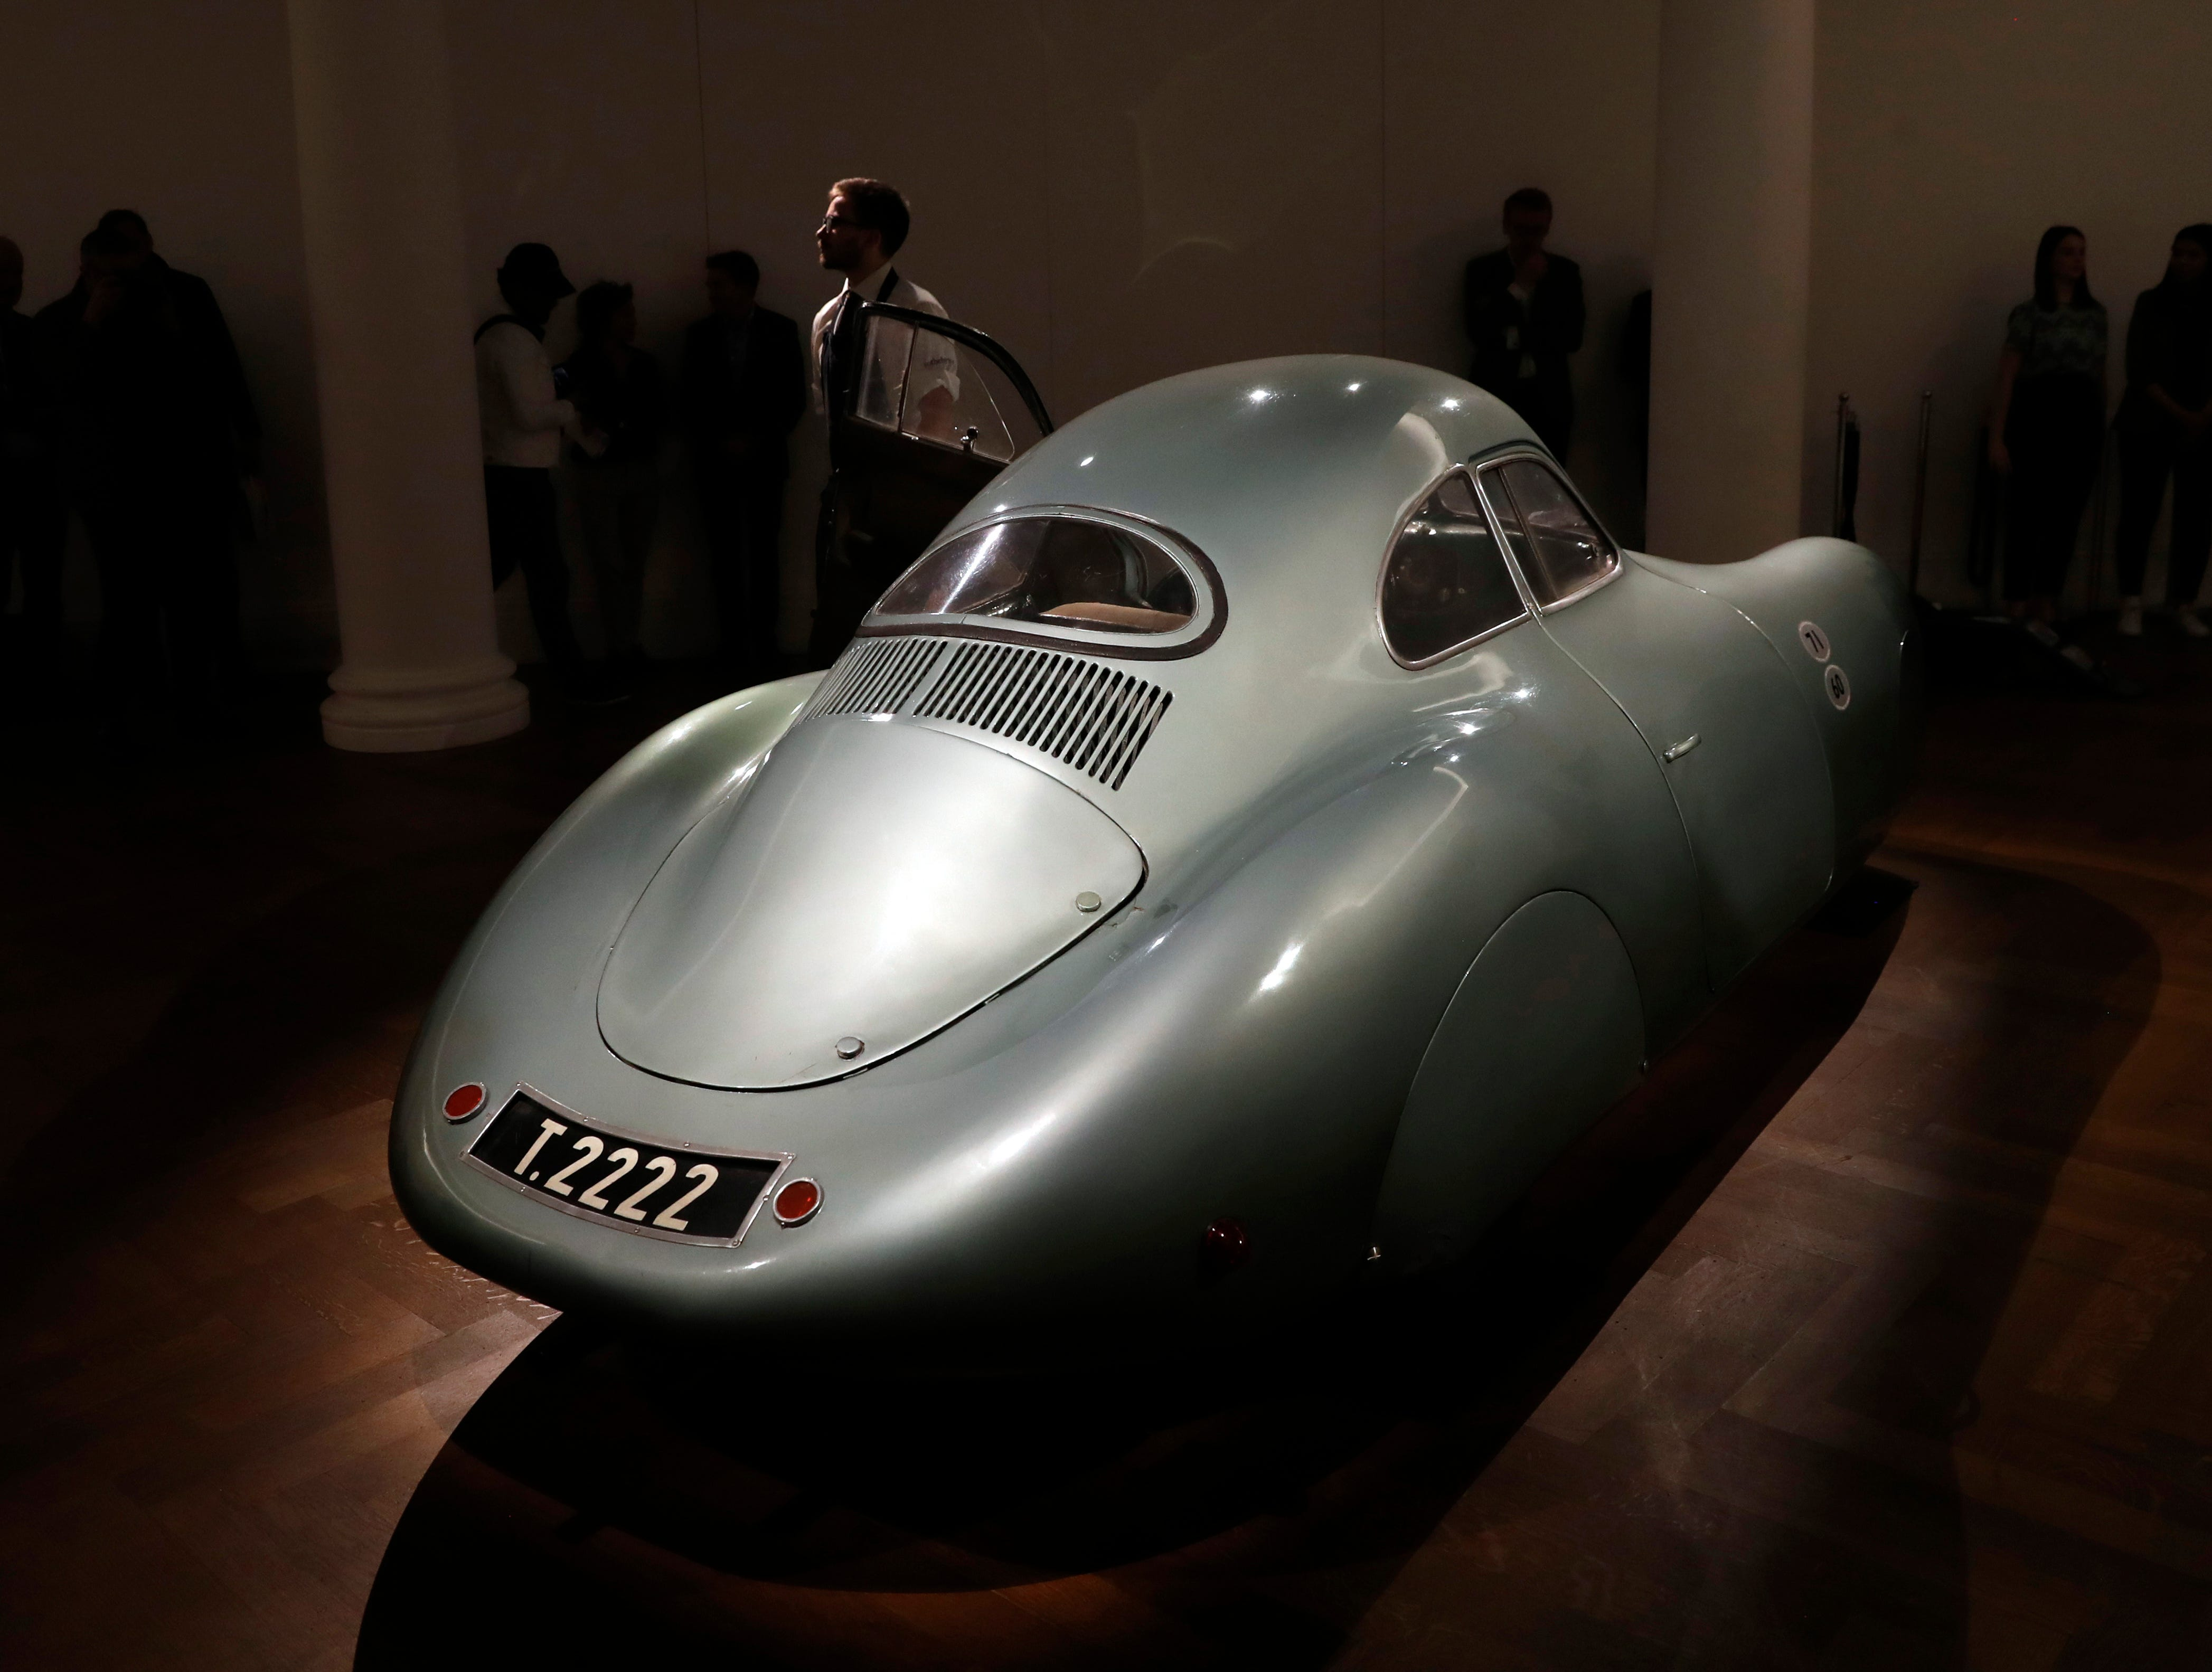 A 1939 Porsche Type 64, the oldest car to wear a Porsche badge and the personal car of German car designer and manufacturer Ferdinand and Ferry Porsche, is on display during a press preview at Sotheby's auction house in London, Tuesday, May 21, 2019. The only surviving example of the Type 64 Porsche, the car will go on sale at an auction in Monterey, California in August and is expected to sell at around $20 million.